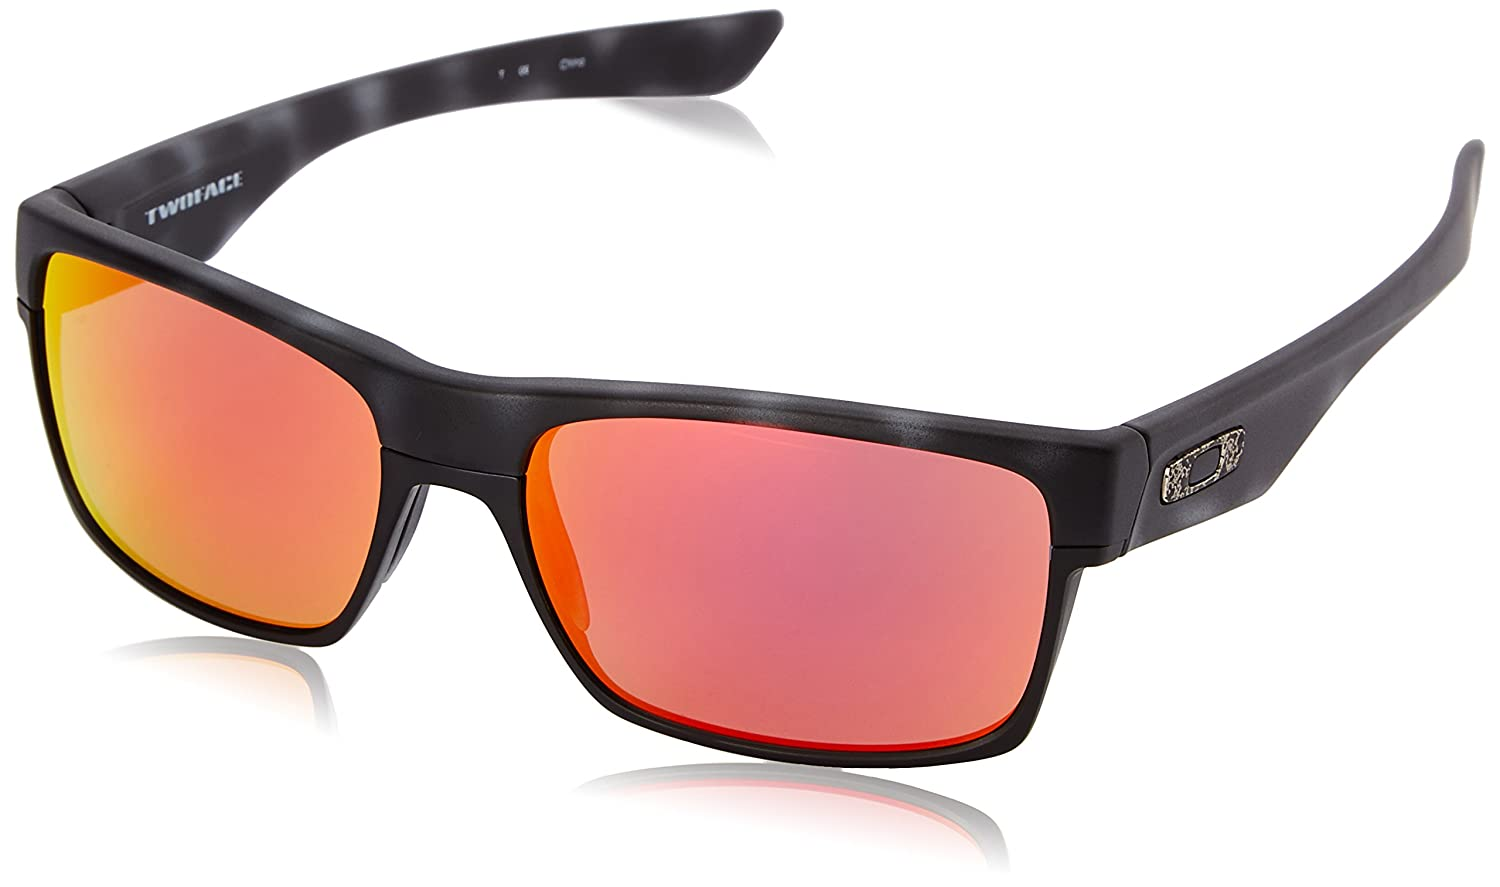 daee13a446 Oakley Twoface Special Edition Fallout Matte Black Tortoise - Ruby Iridium   Amazon.co.uk  Sports   Outdoors